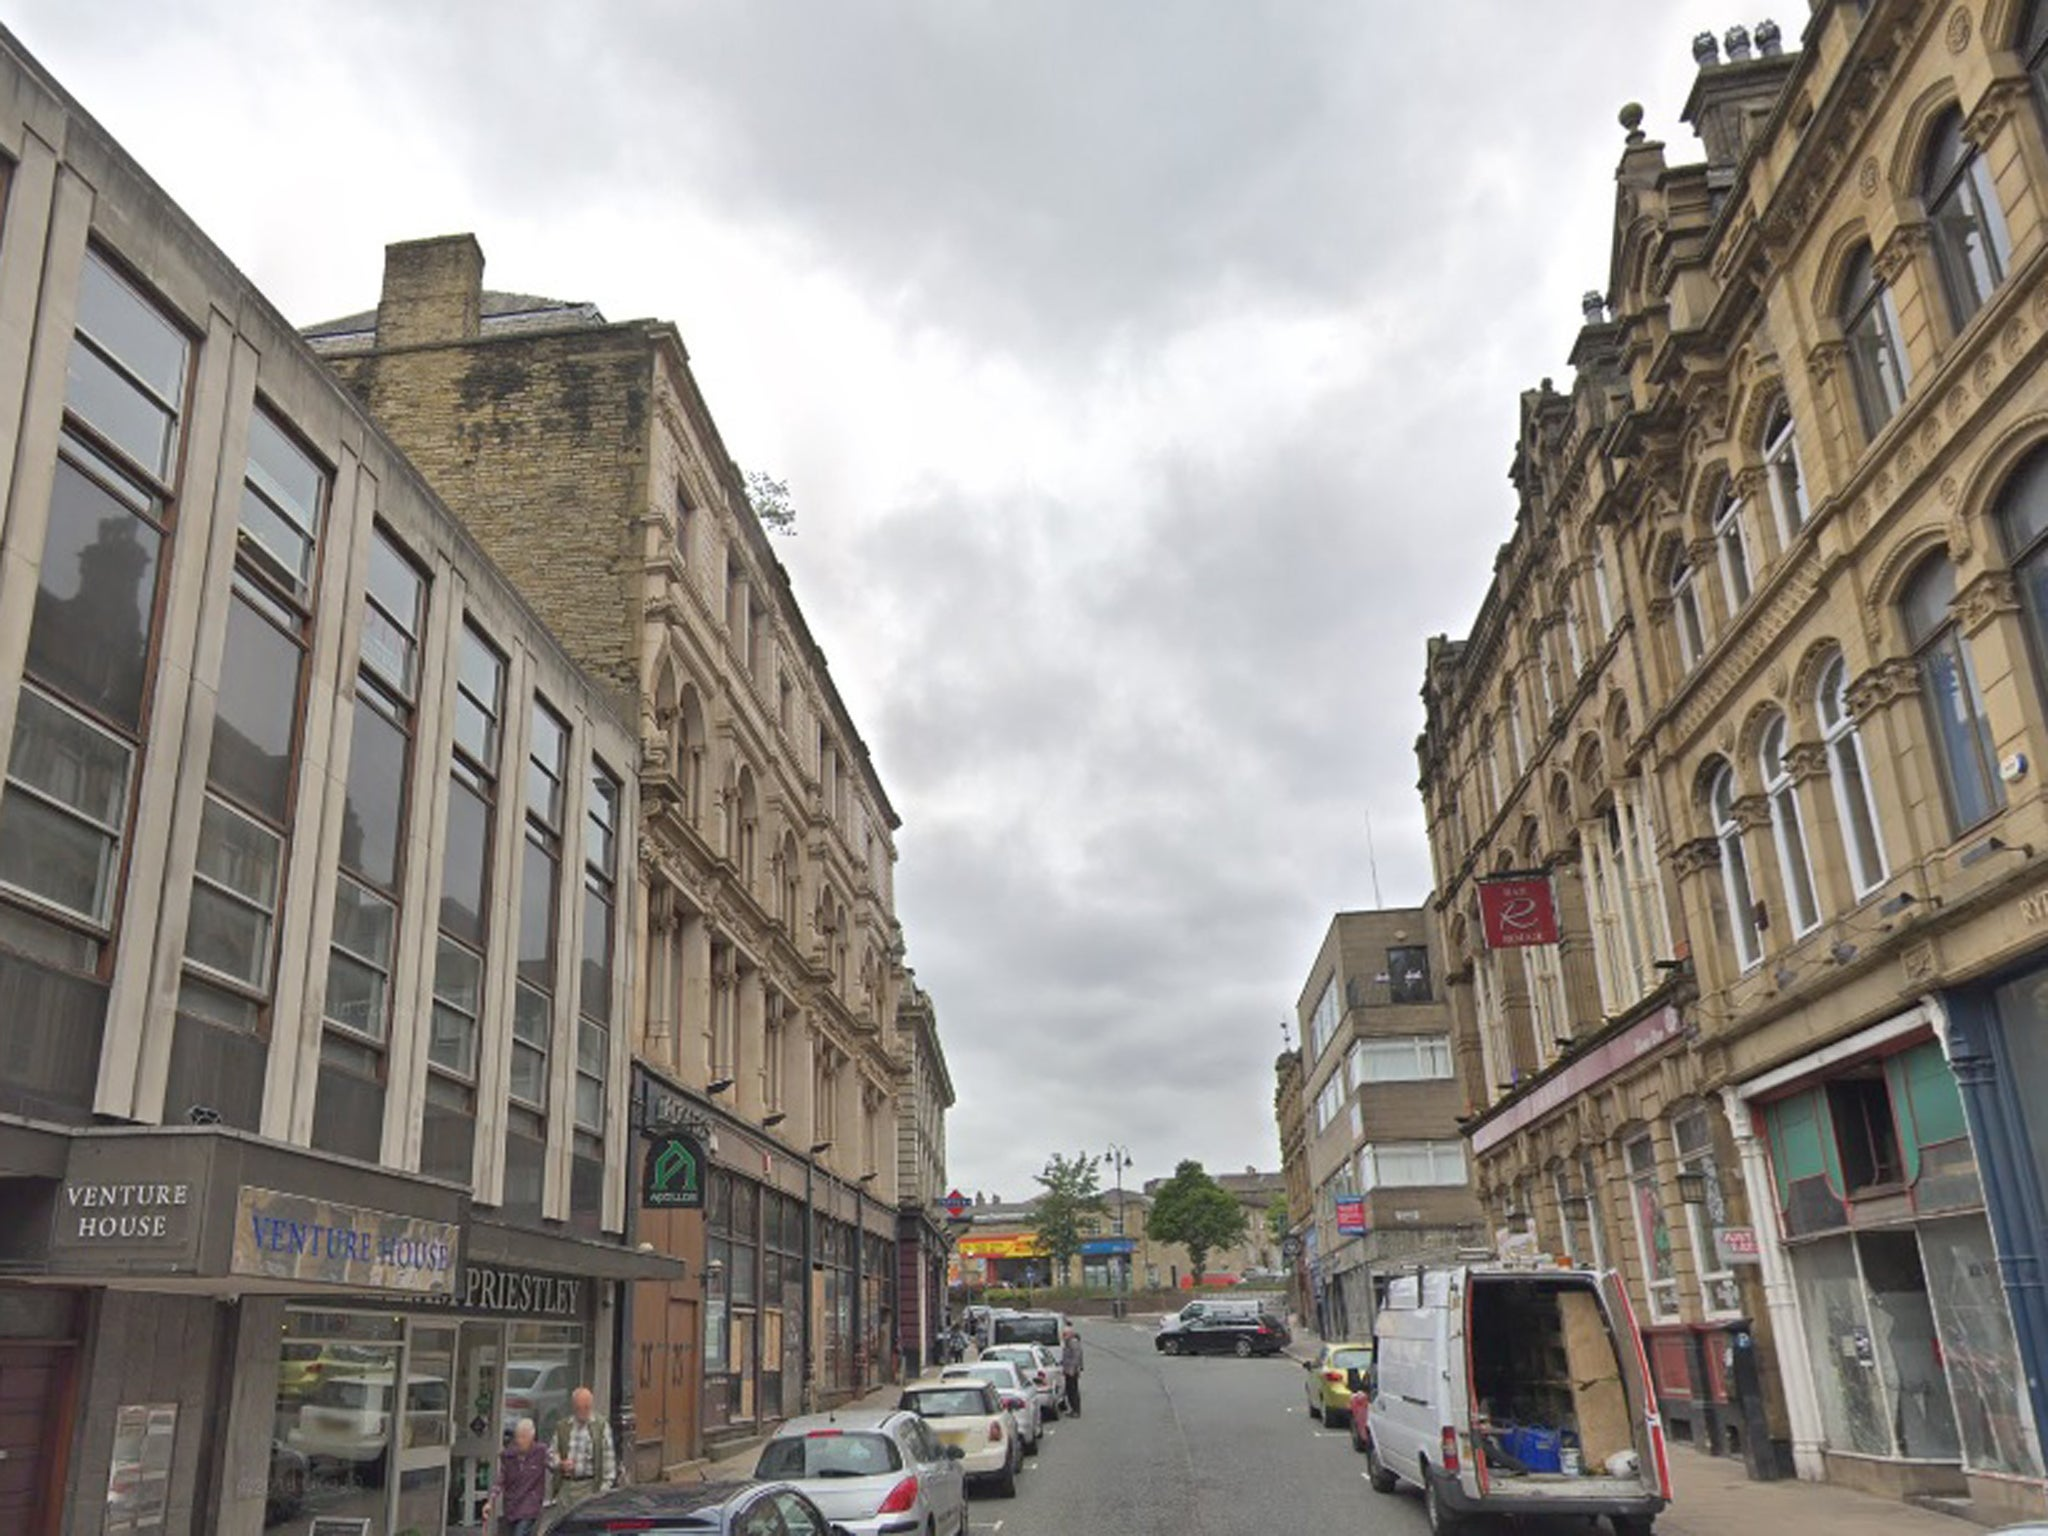 Murder investigation launched after woman dies after 'altercation' in Halifax town centre